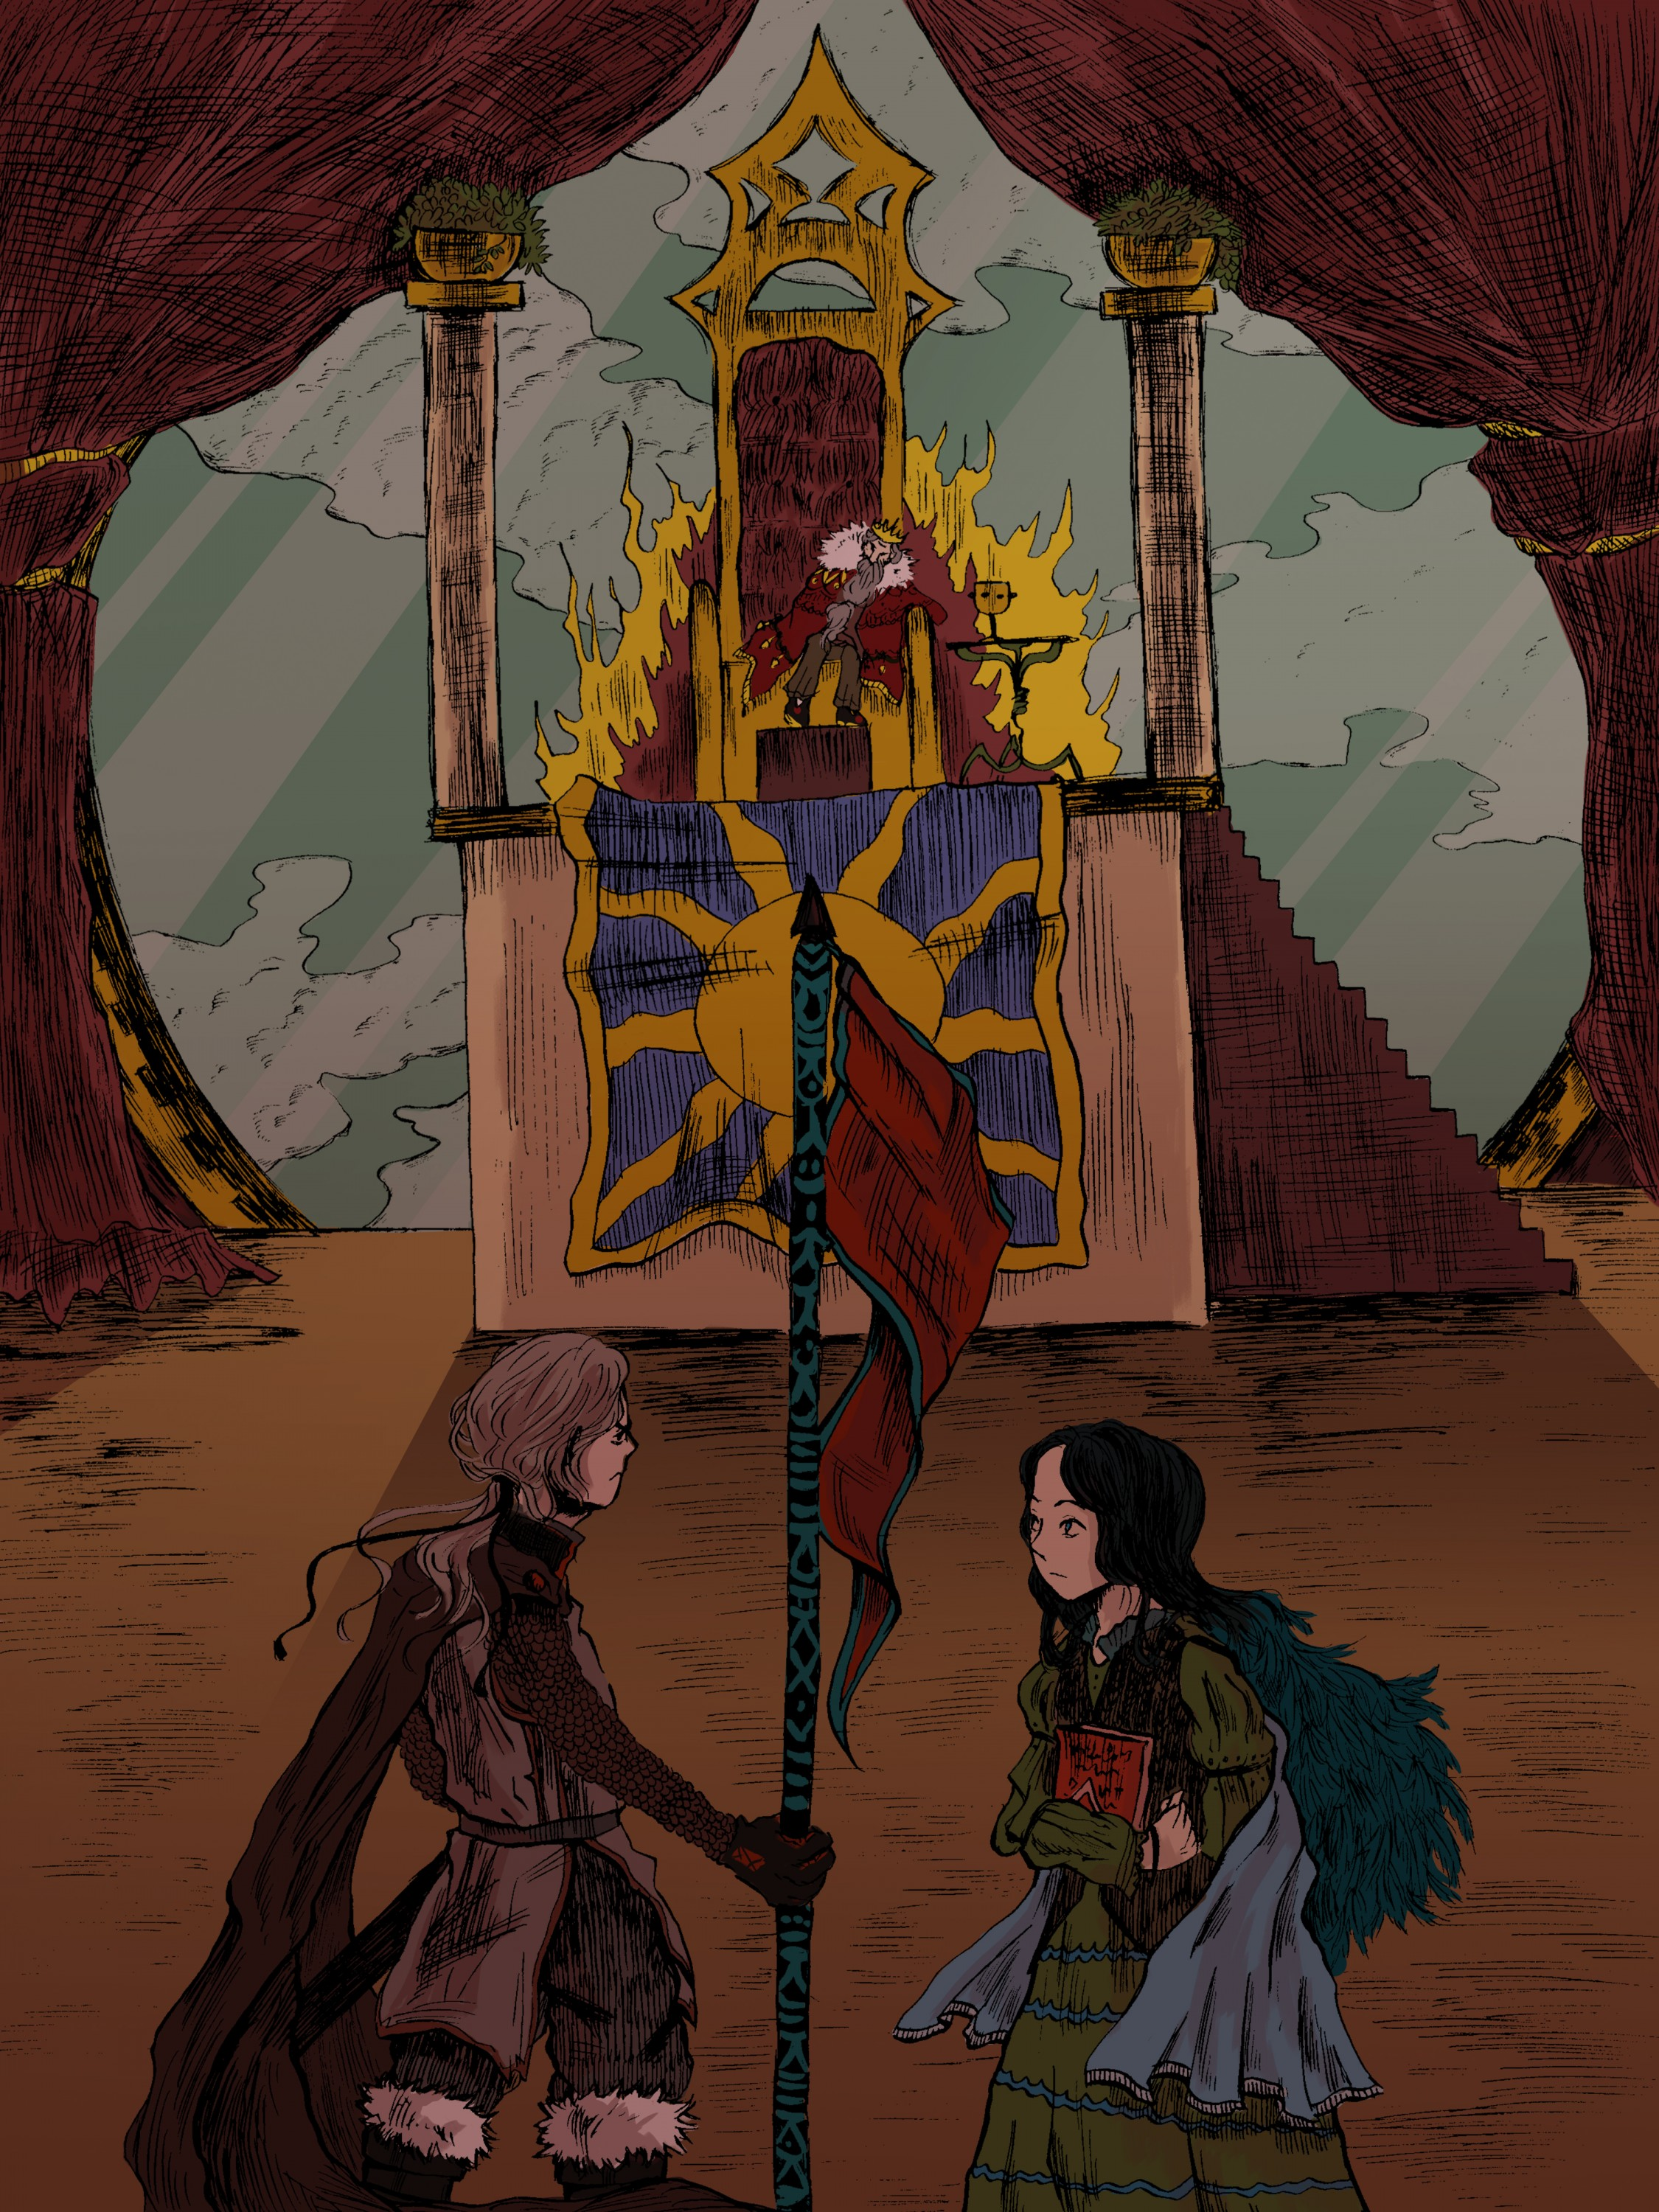 Book illustration for an original story where the characters confront the evil king.